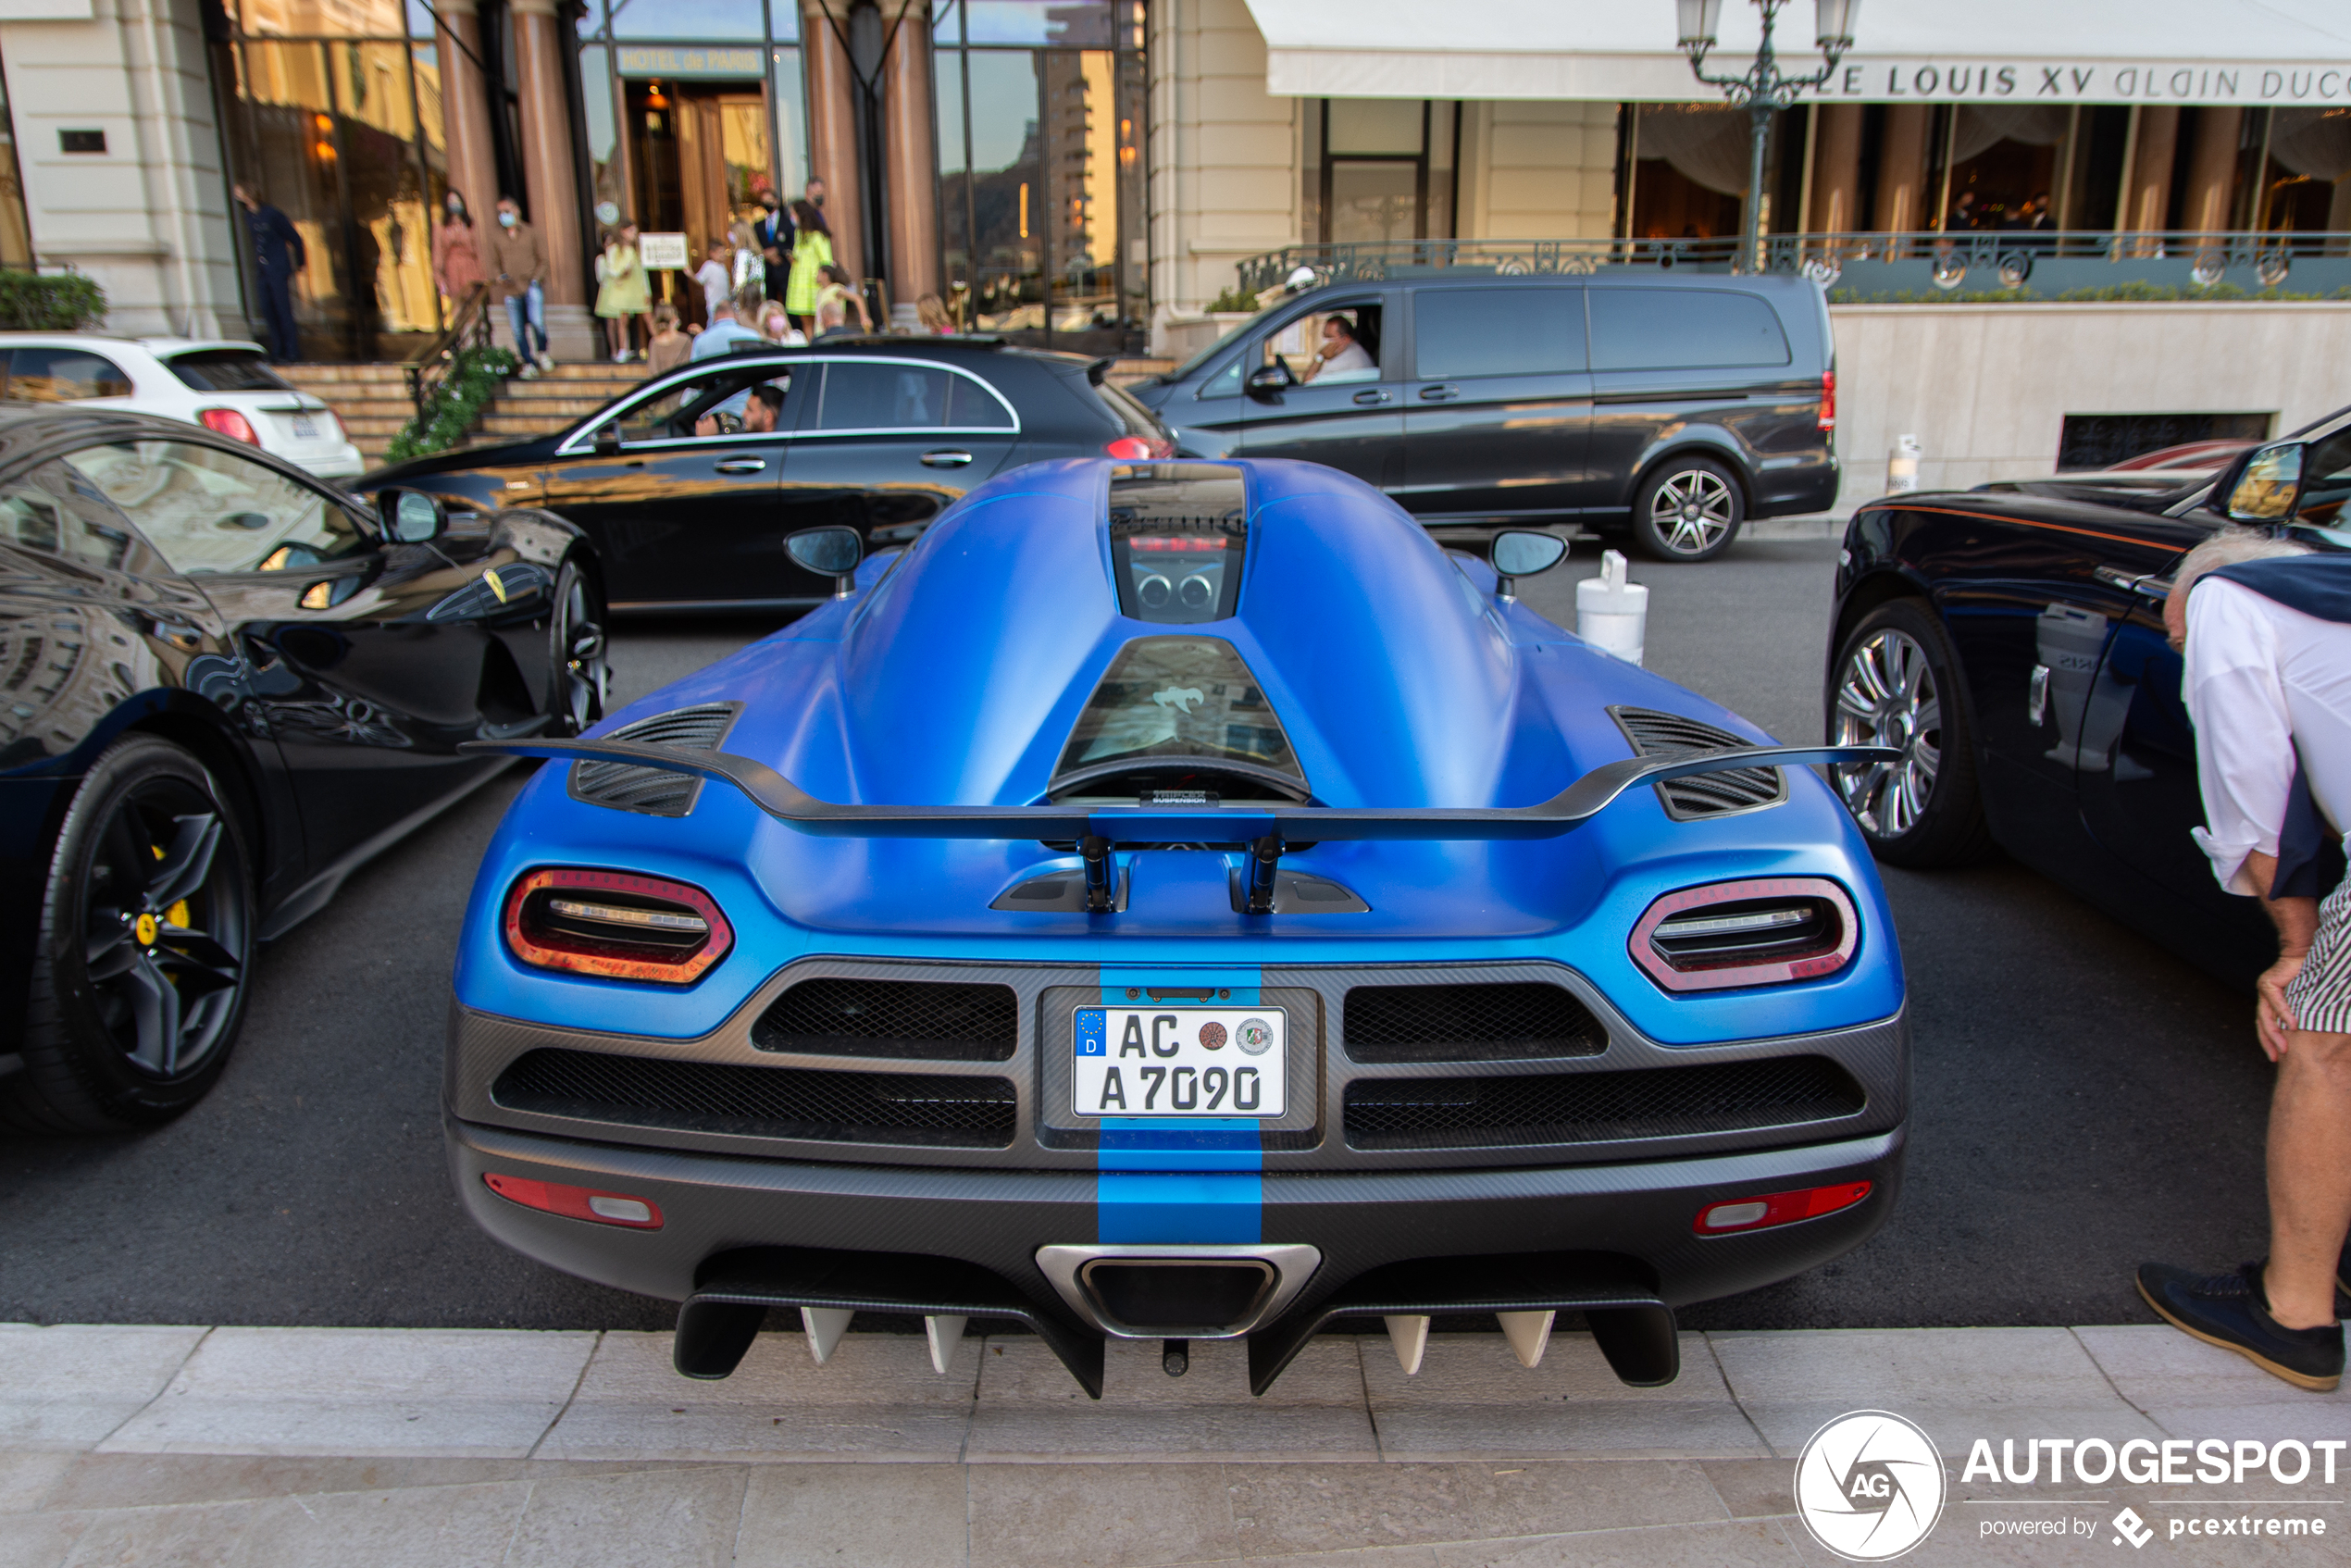 Finally we get to see a new Koenigsegg Agera R